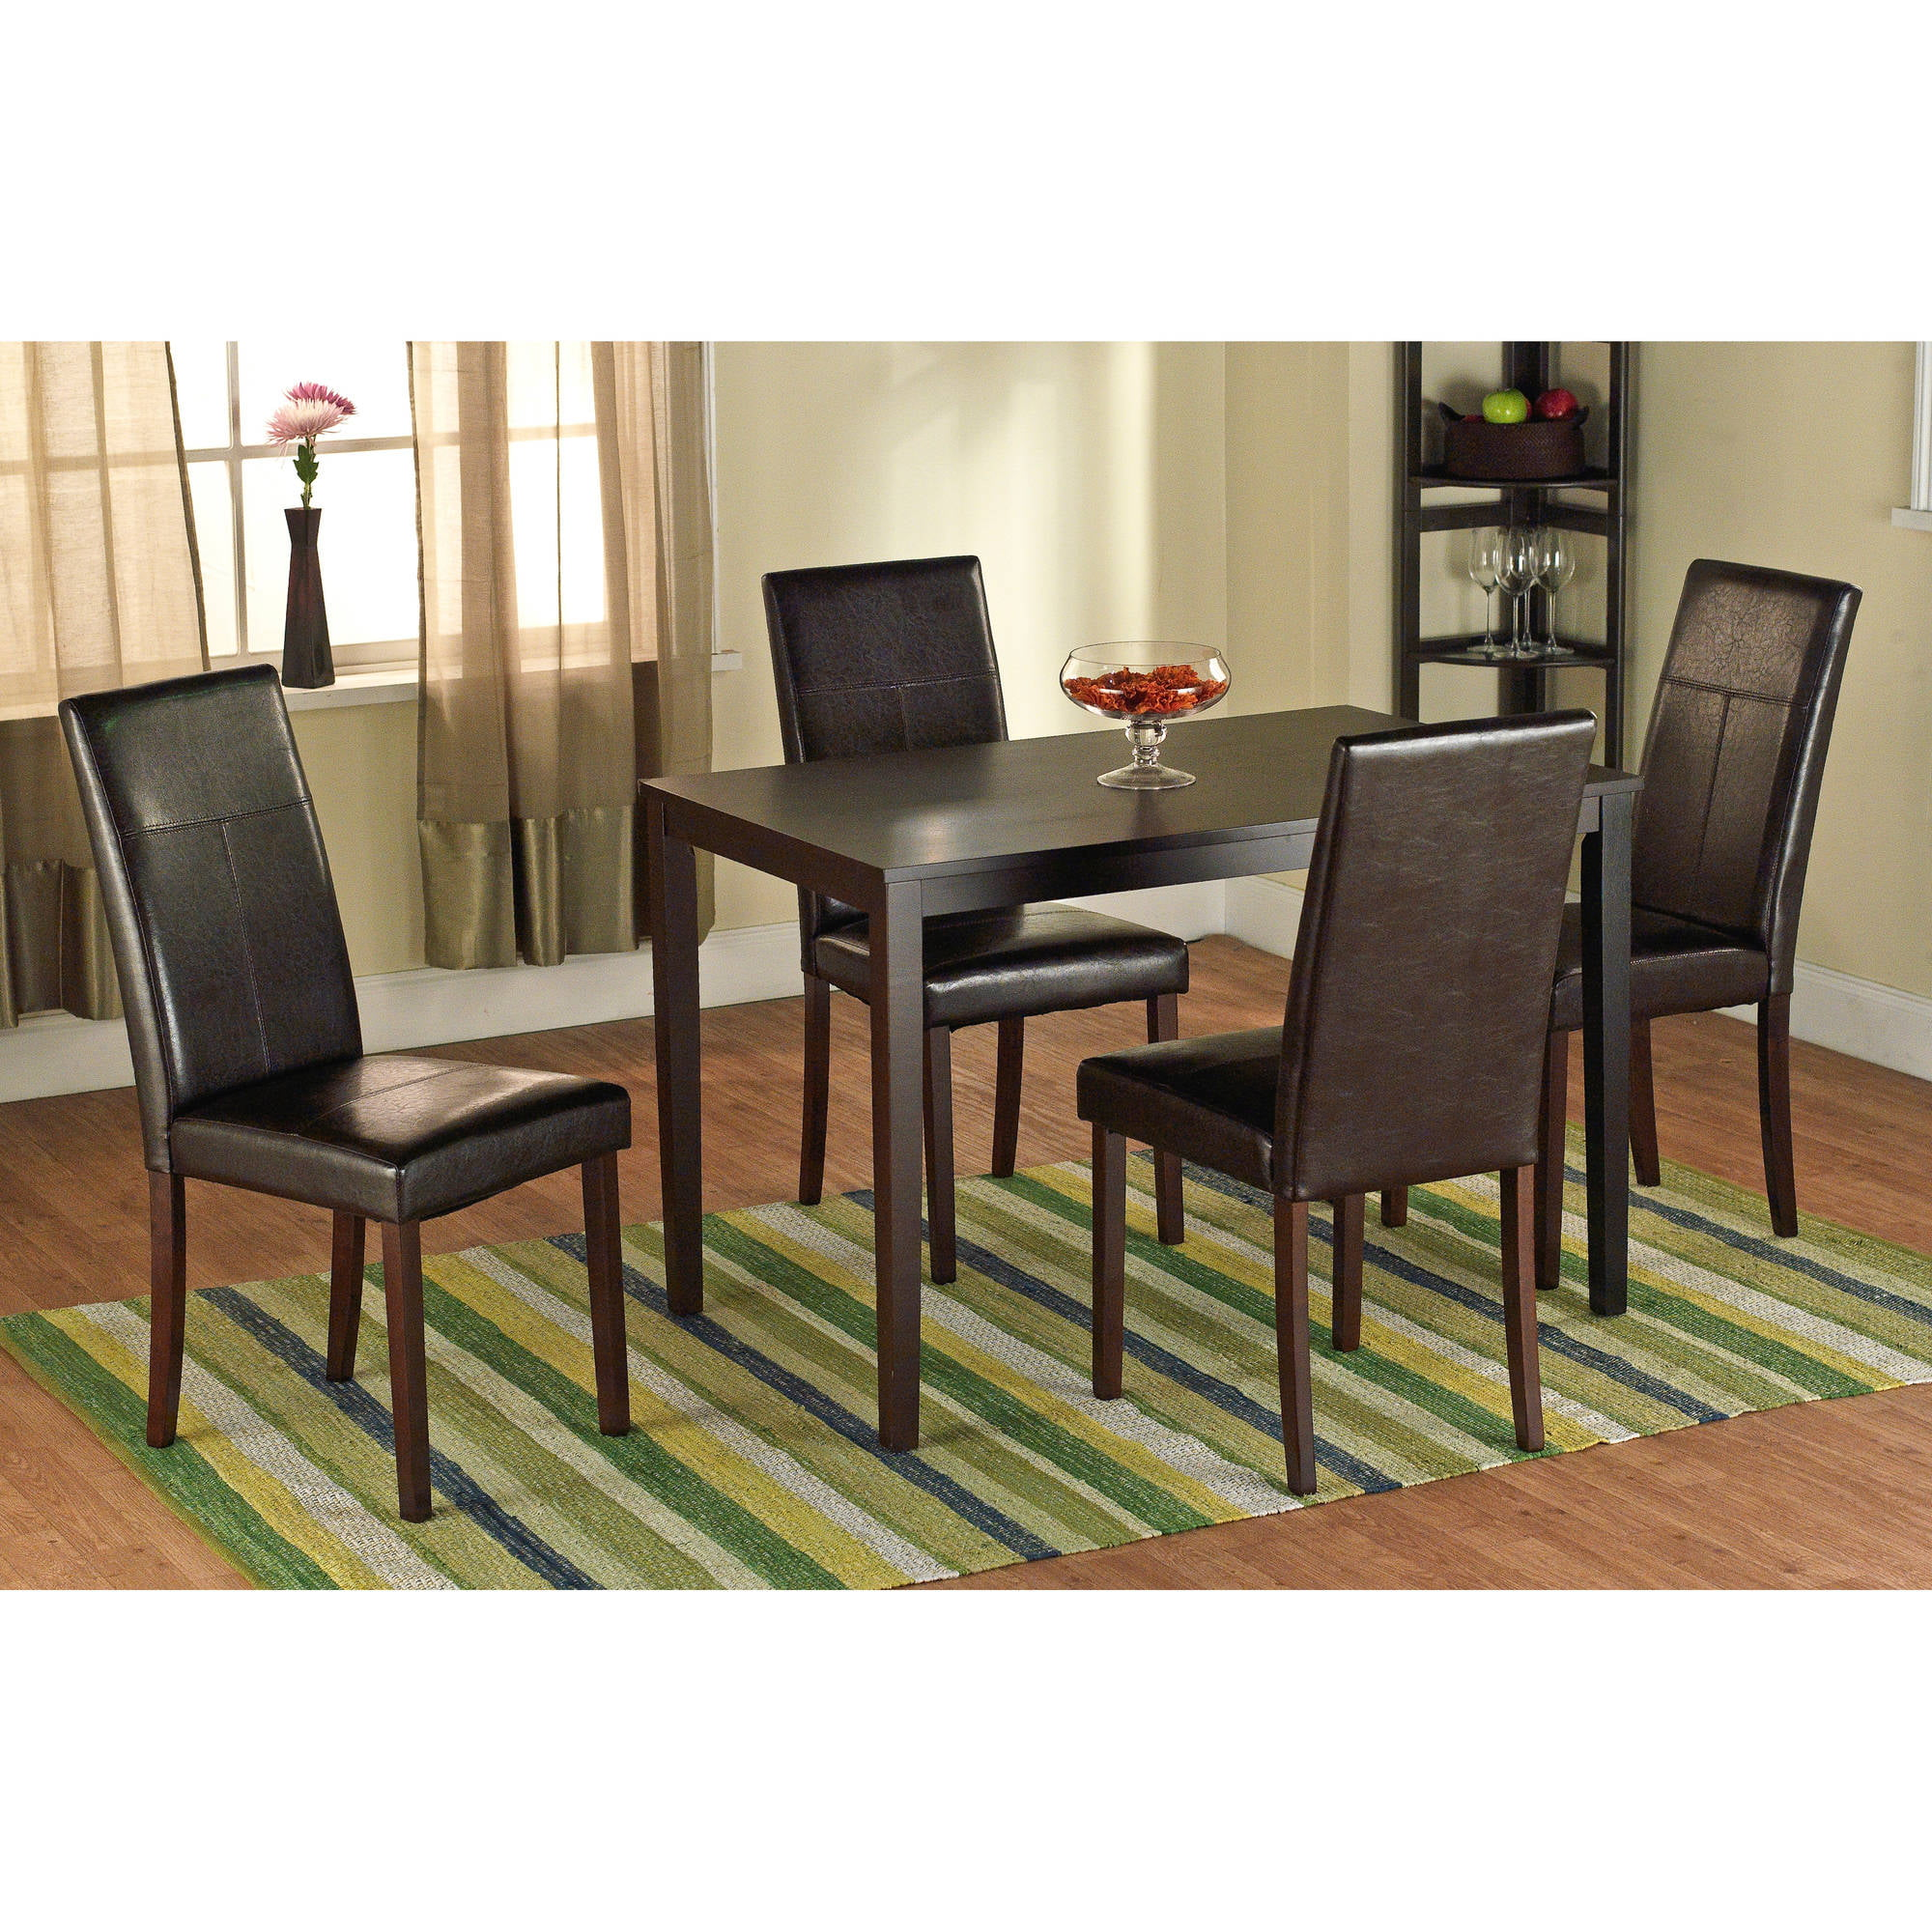 Dining Chairs Brown kitchen & dining furniture - walmart